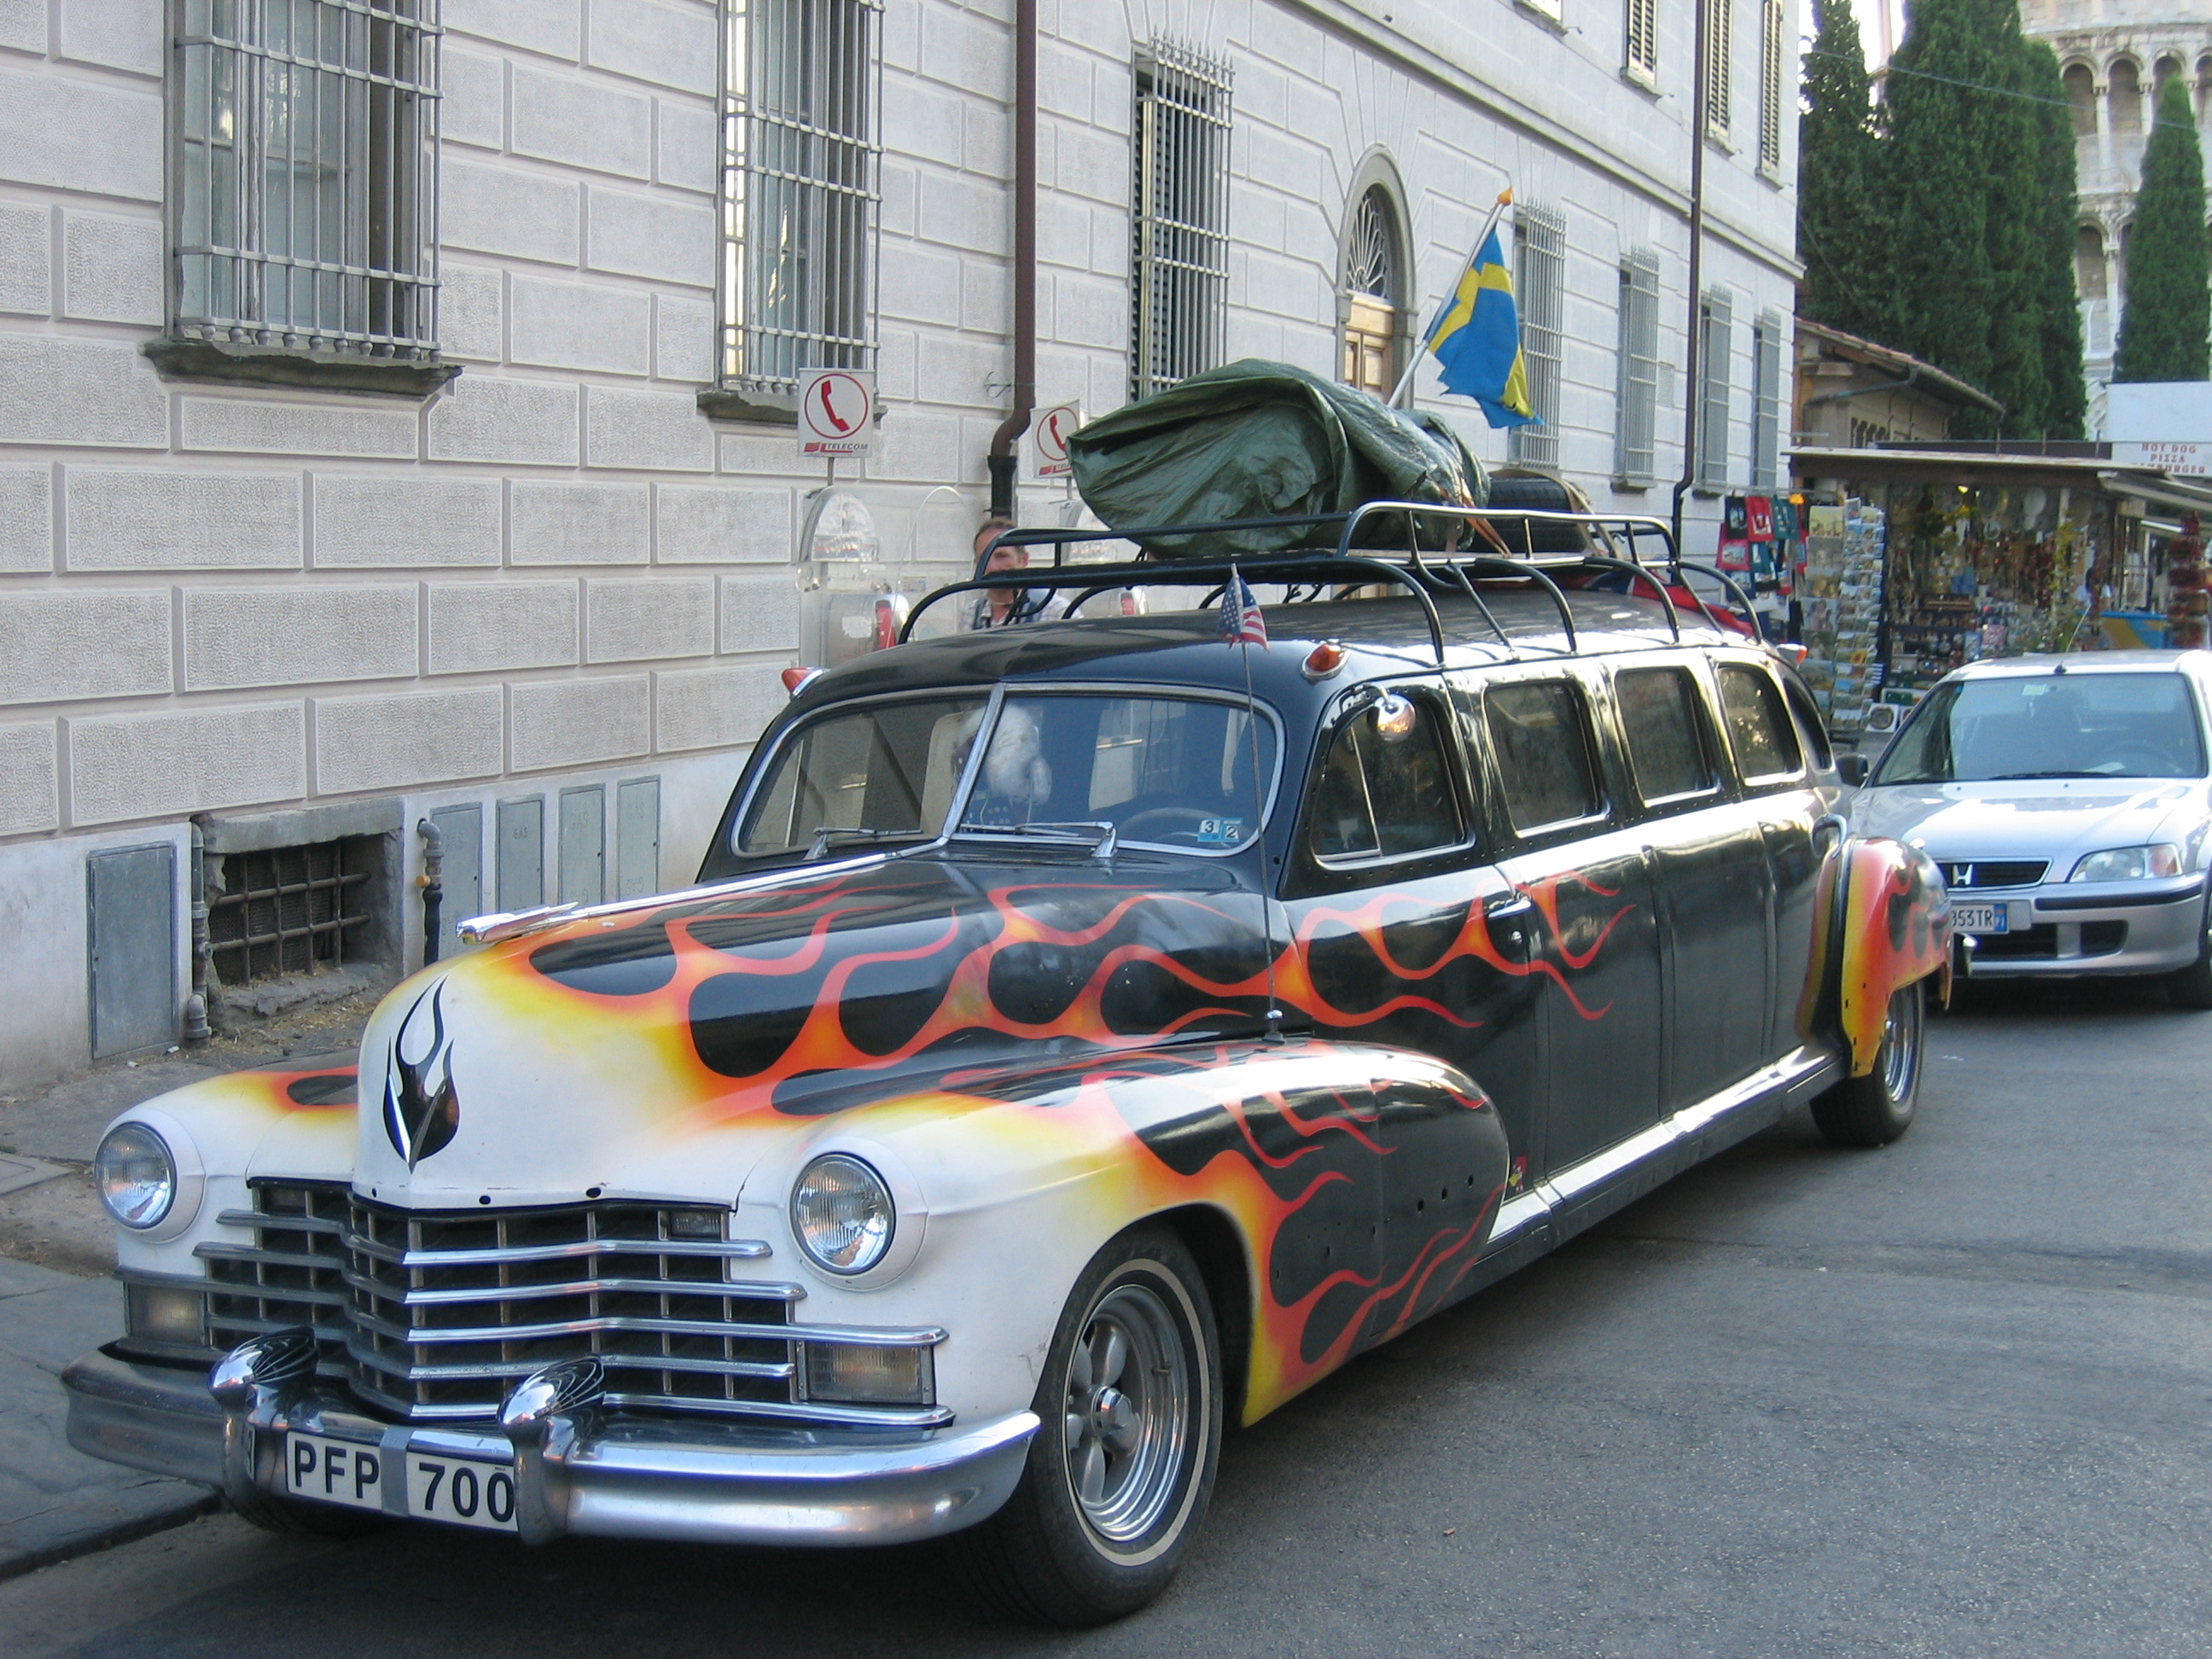 File:1946 Cadillac stretch limo.jpg - Wikimedia Commons